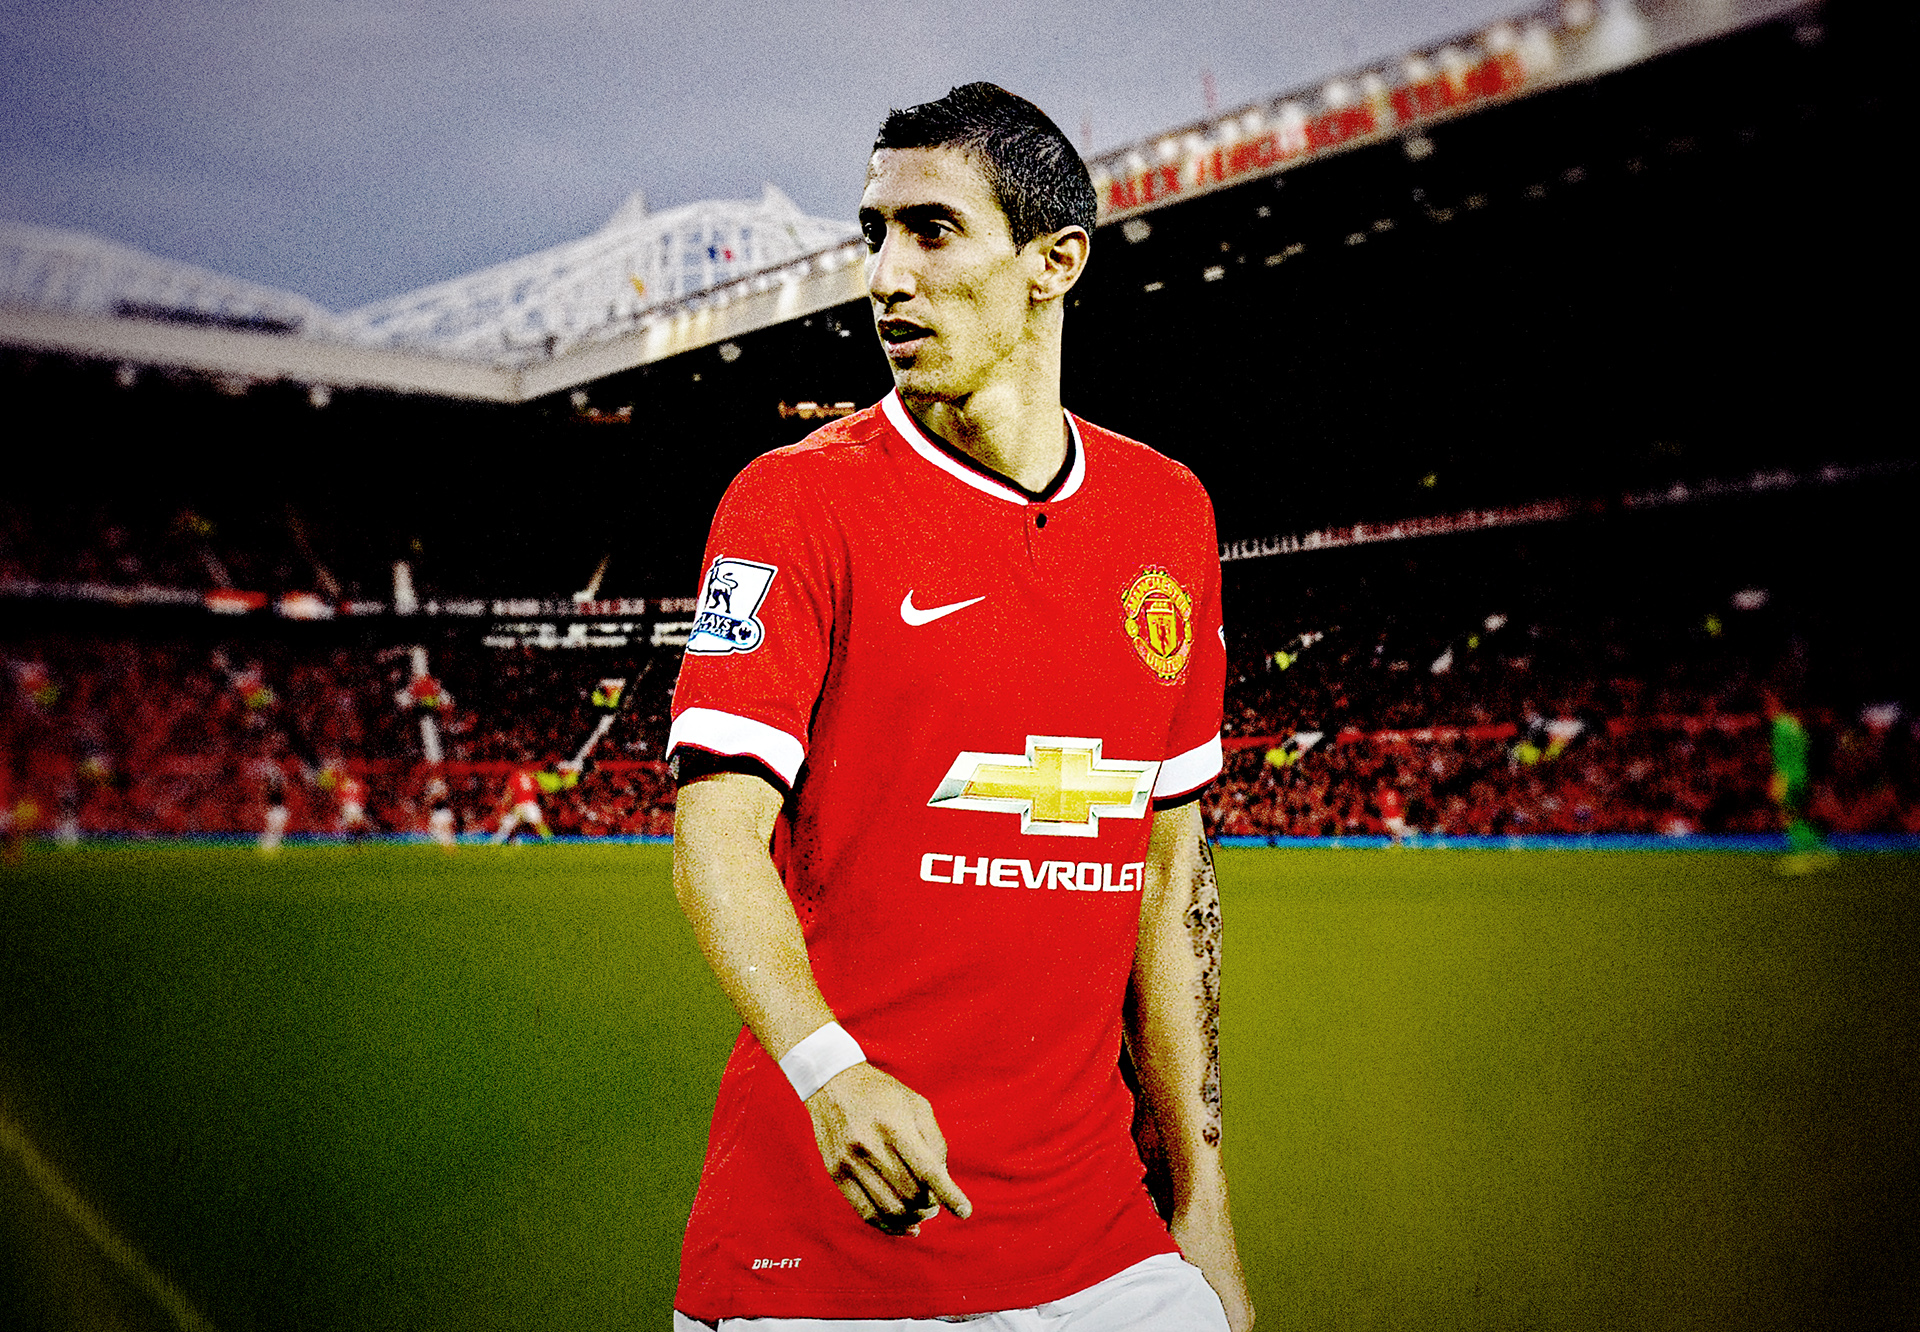 Di Maria, Rooney & the top 10 most expensive Manchester United signings